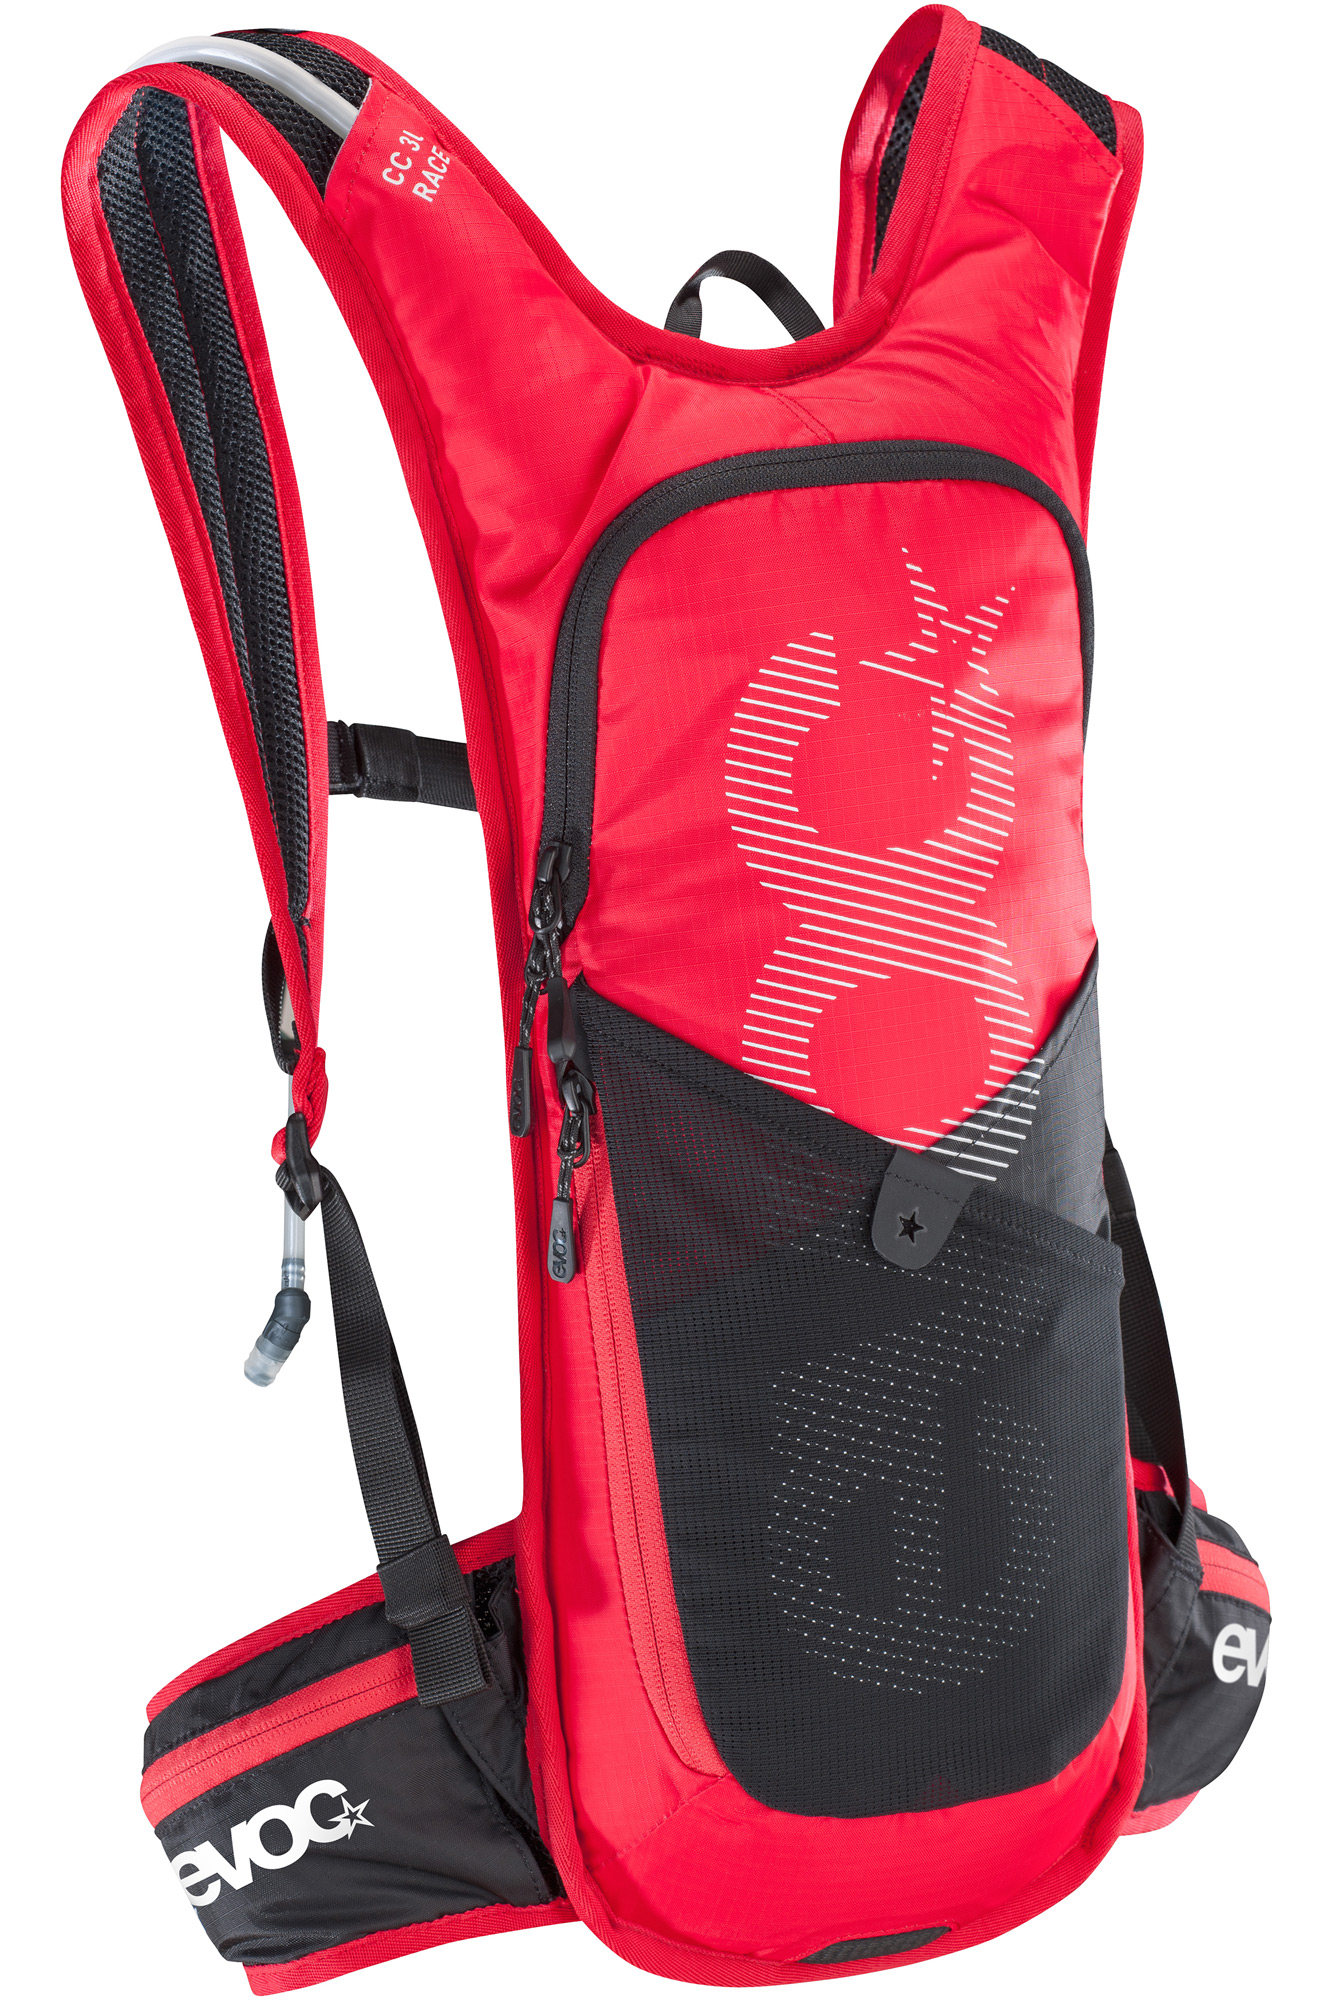 EVOC CC 3l Race, a new slimmed down hydration pack for ...